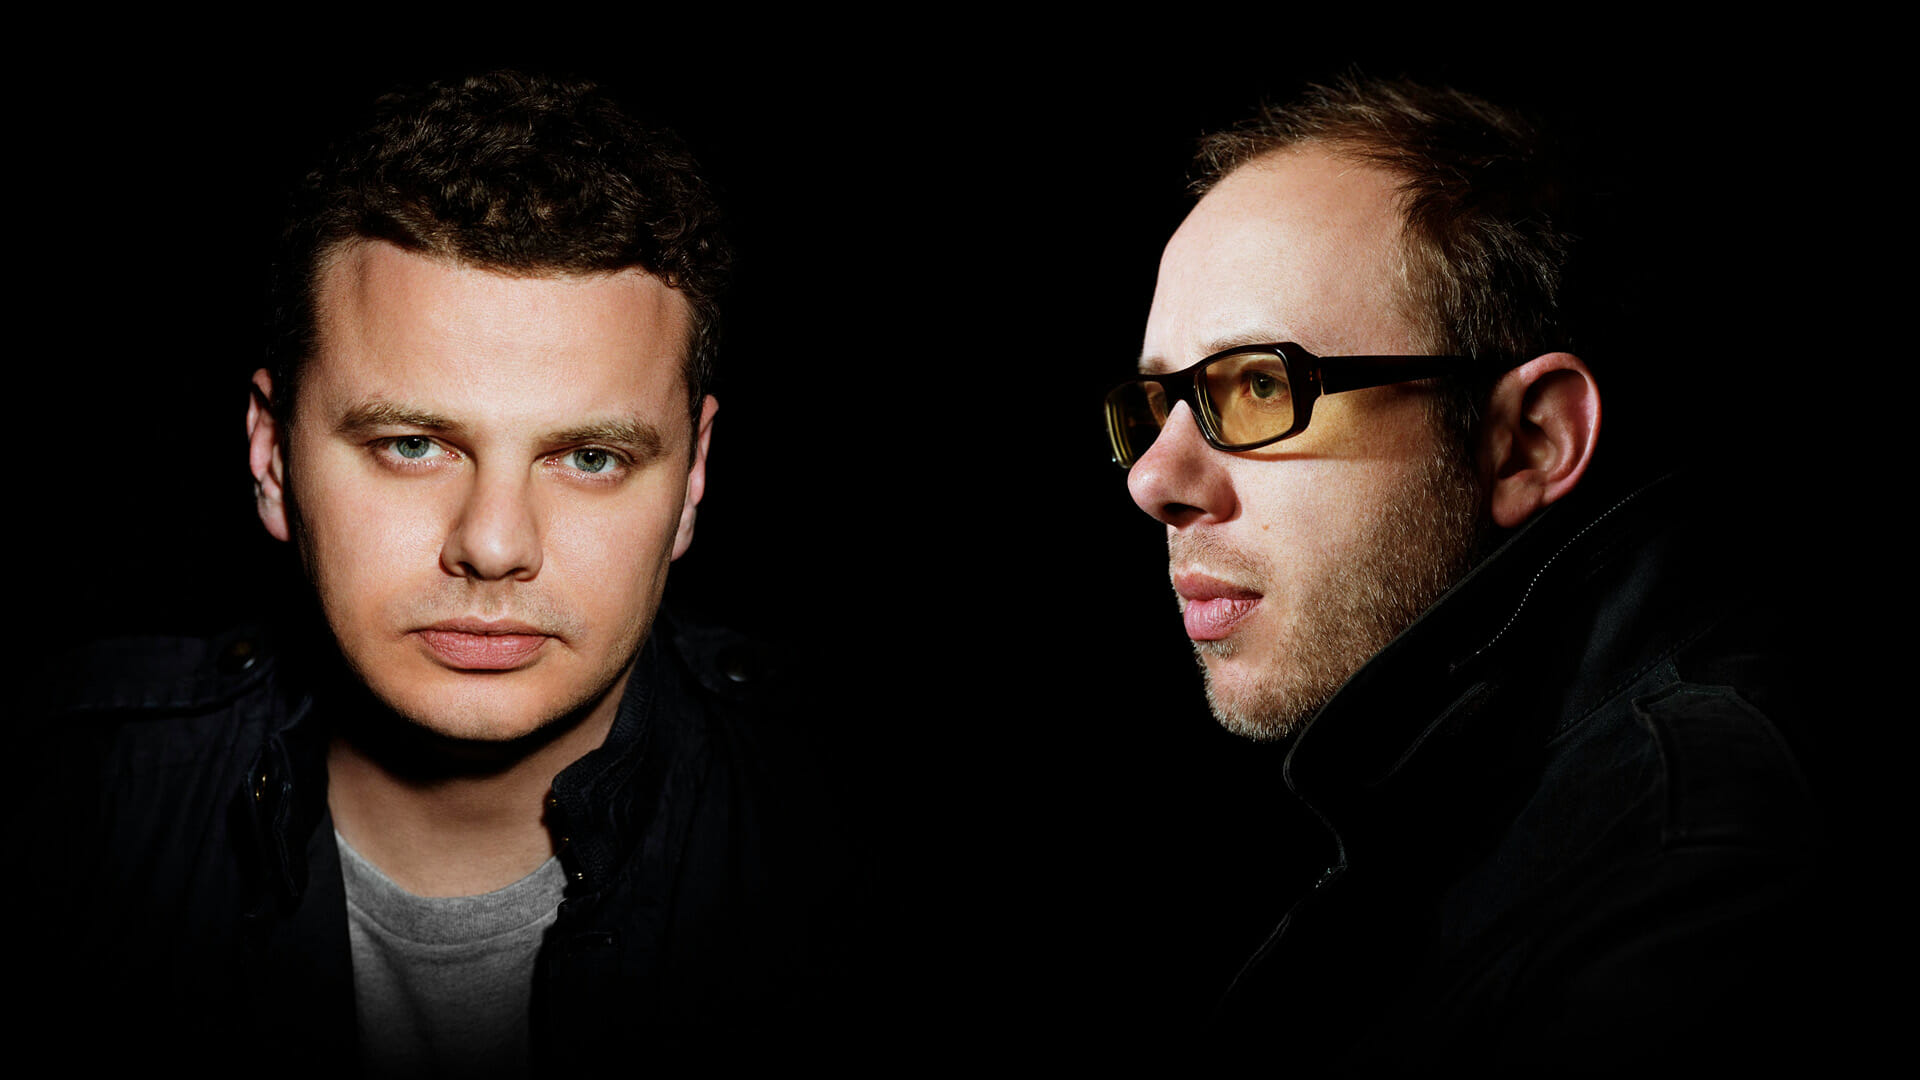 The Chemical Brothers team with Beck for 'Wide Open' on forthcoming albumChemical Brothers